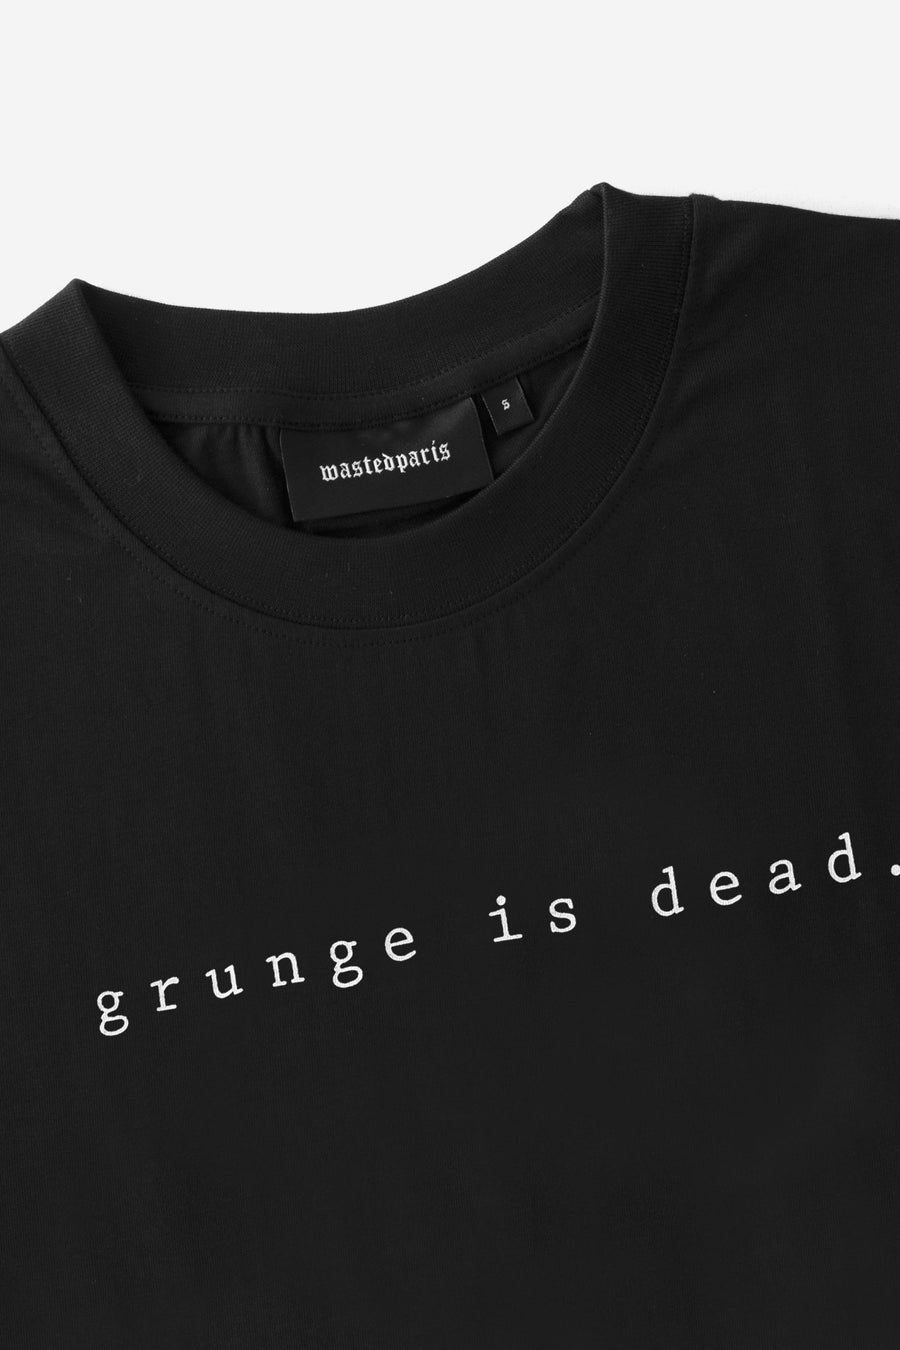 T-shirt Grunge is Dead - WASTED PARIS